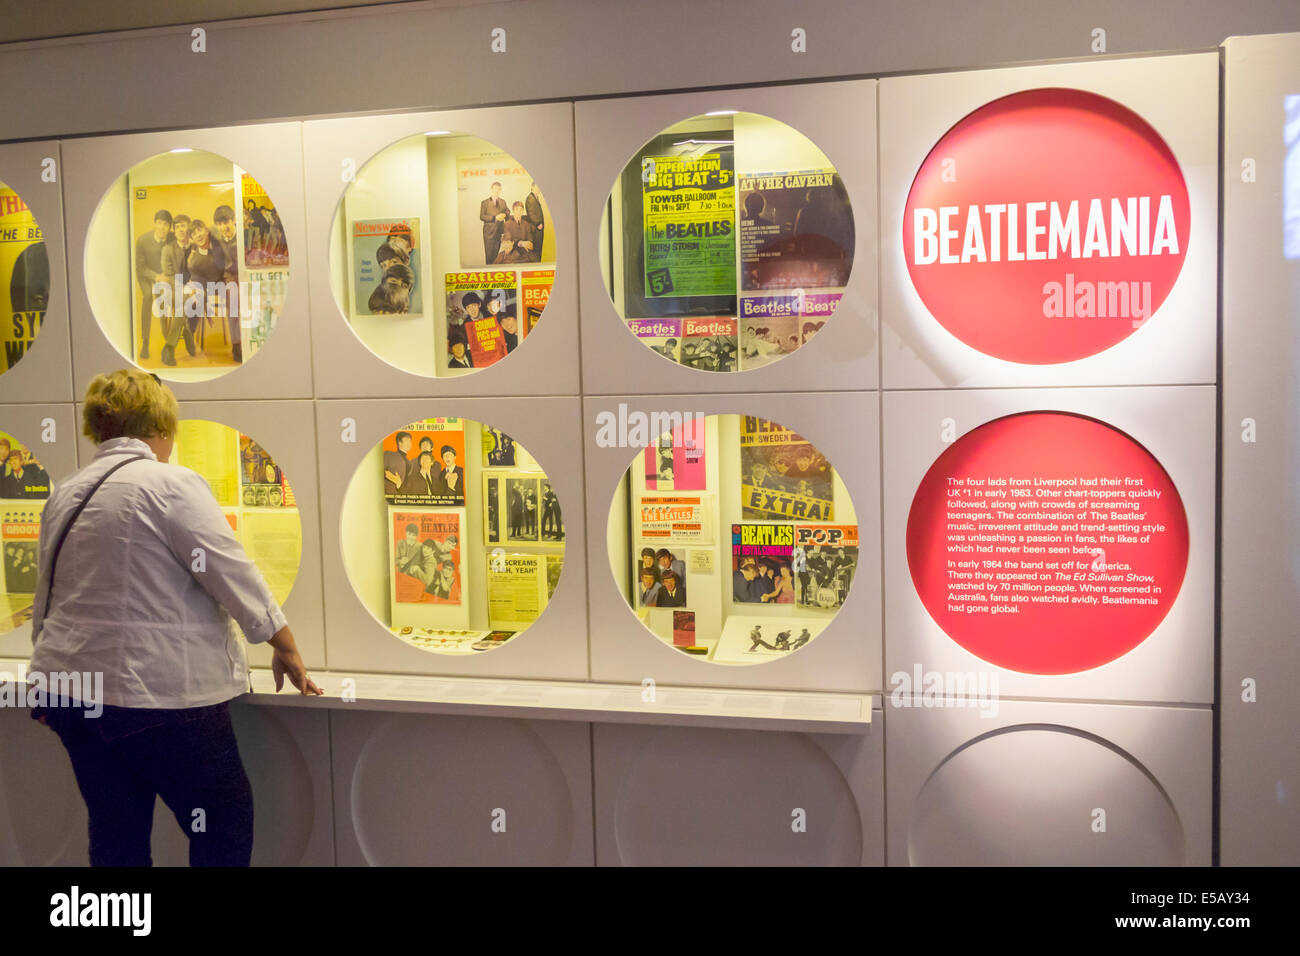 Southbank Melbourne Australie Victoria St Kilda Road Art Center center State Theatre Theatre Beatles en Australie Photo Stock